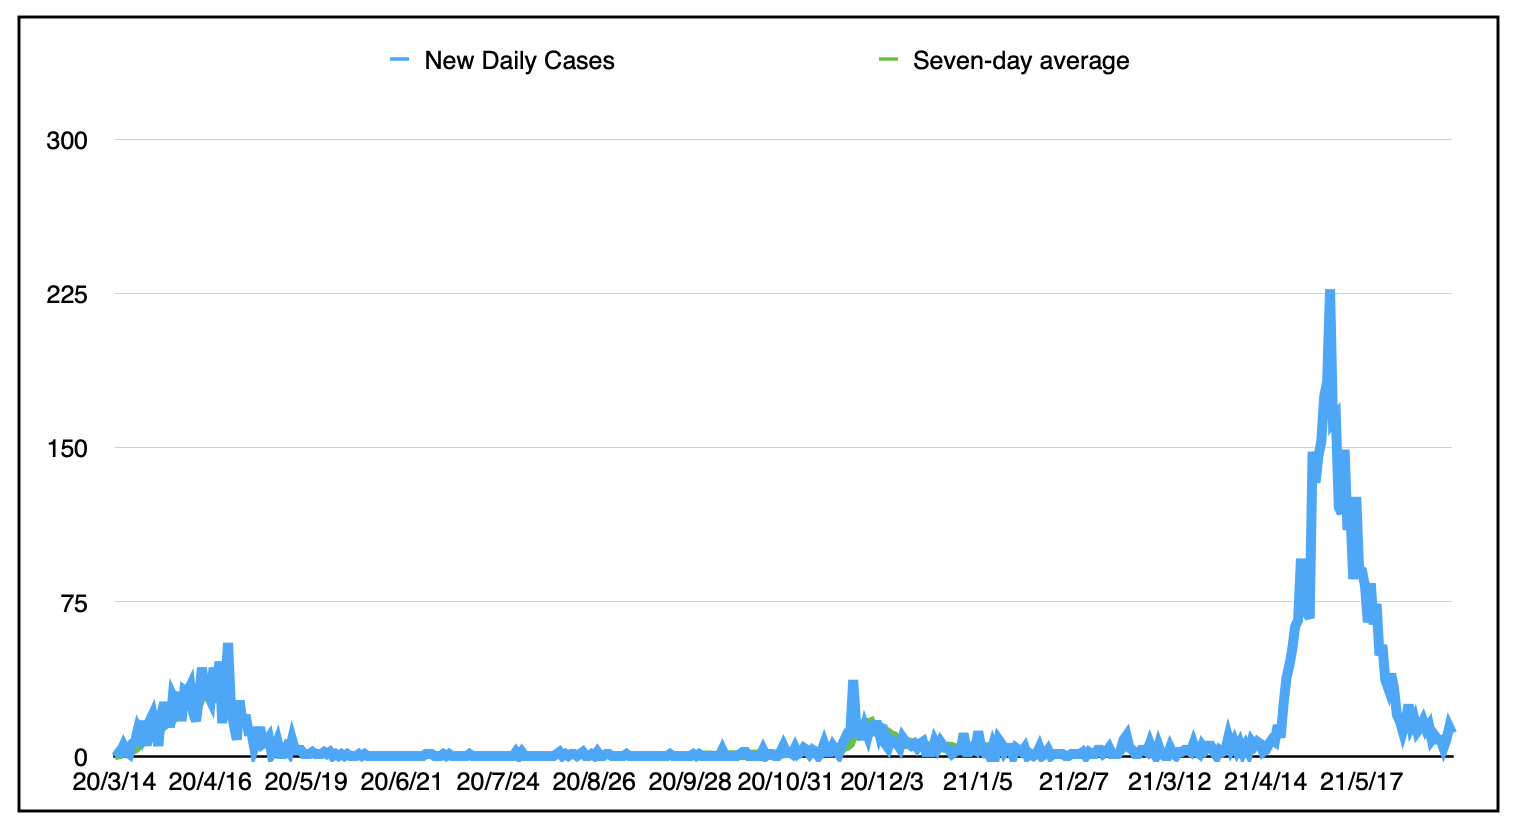 The graph showing the three waves of the daily case counts since the beginning.